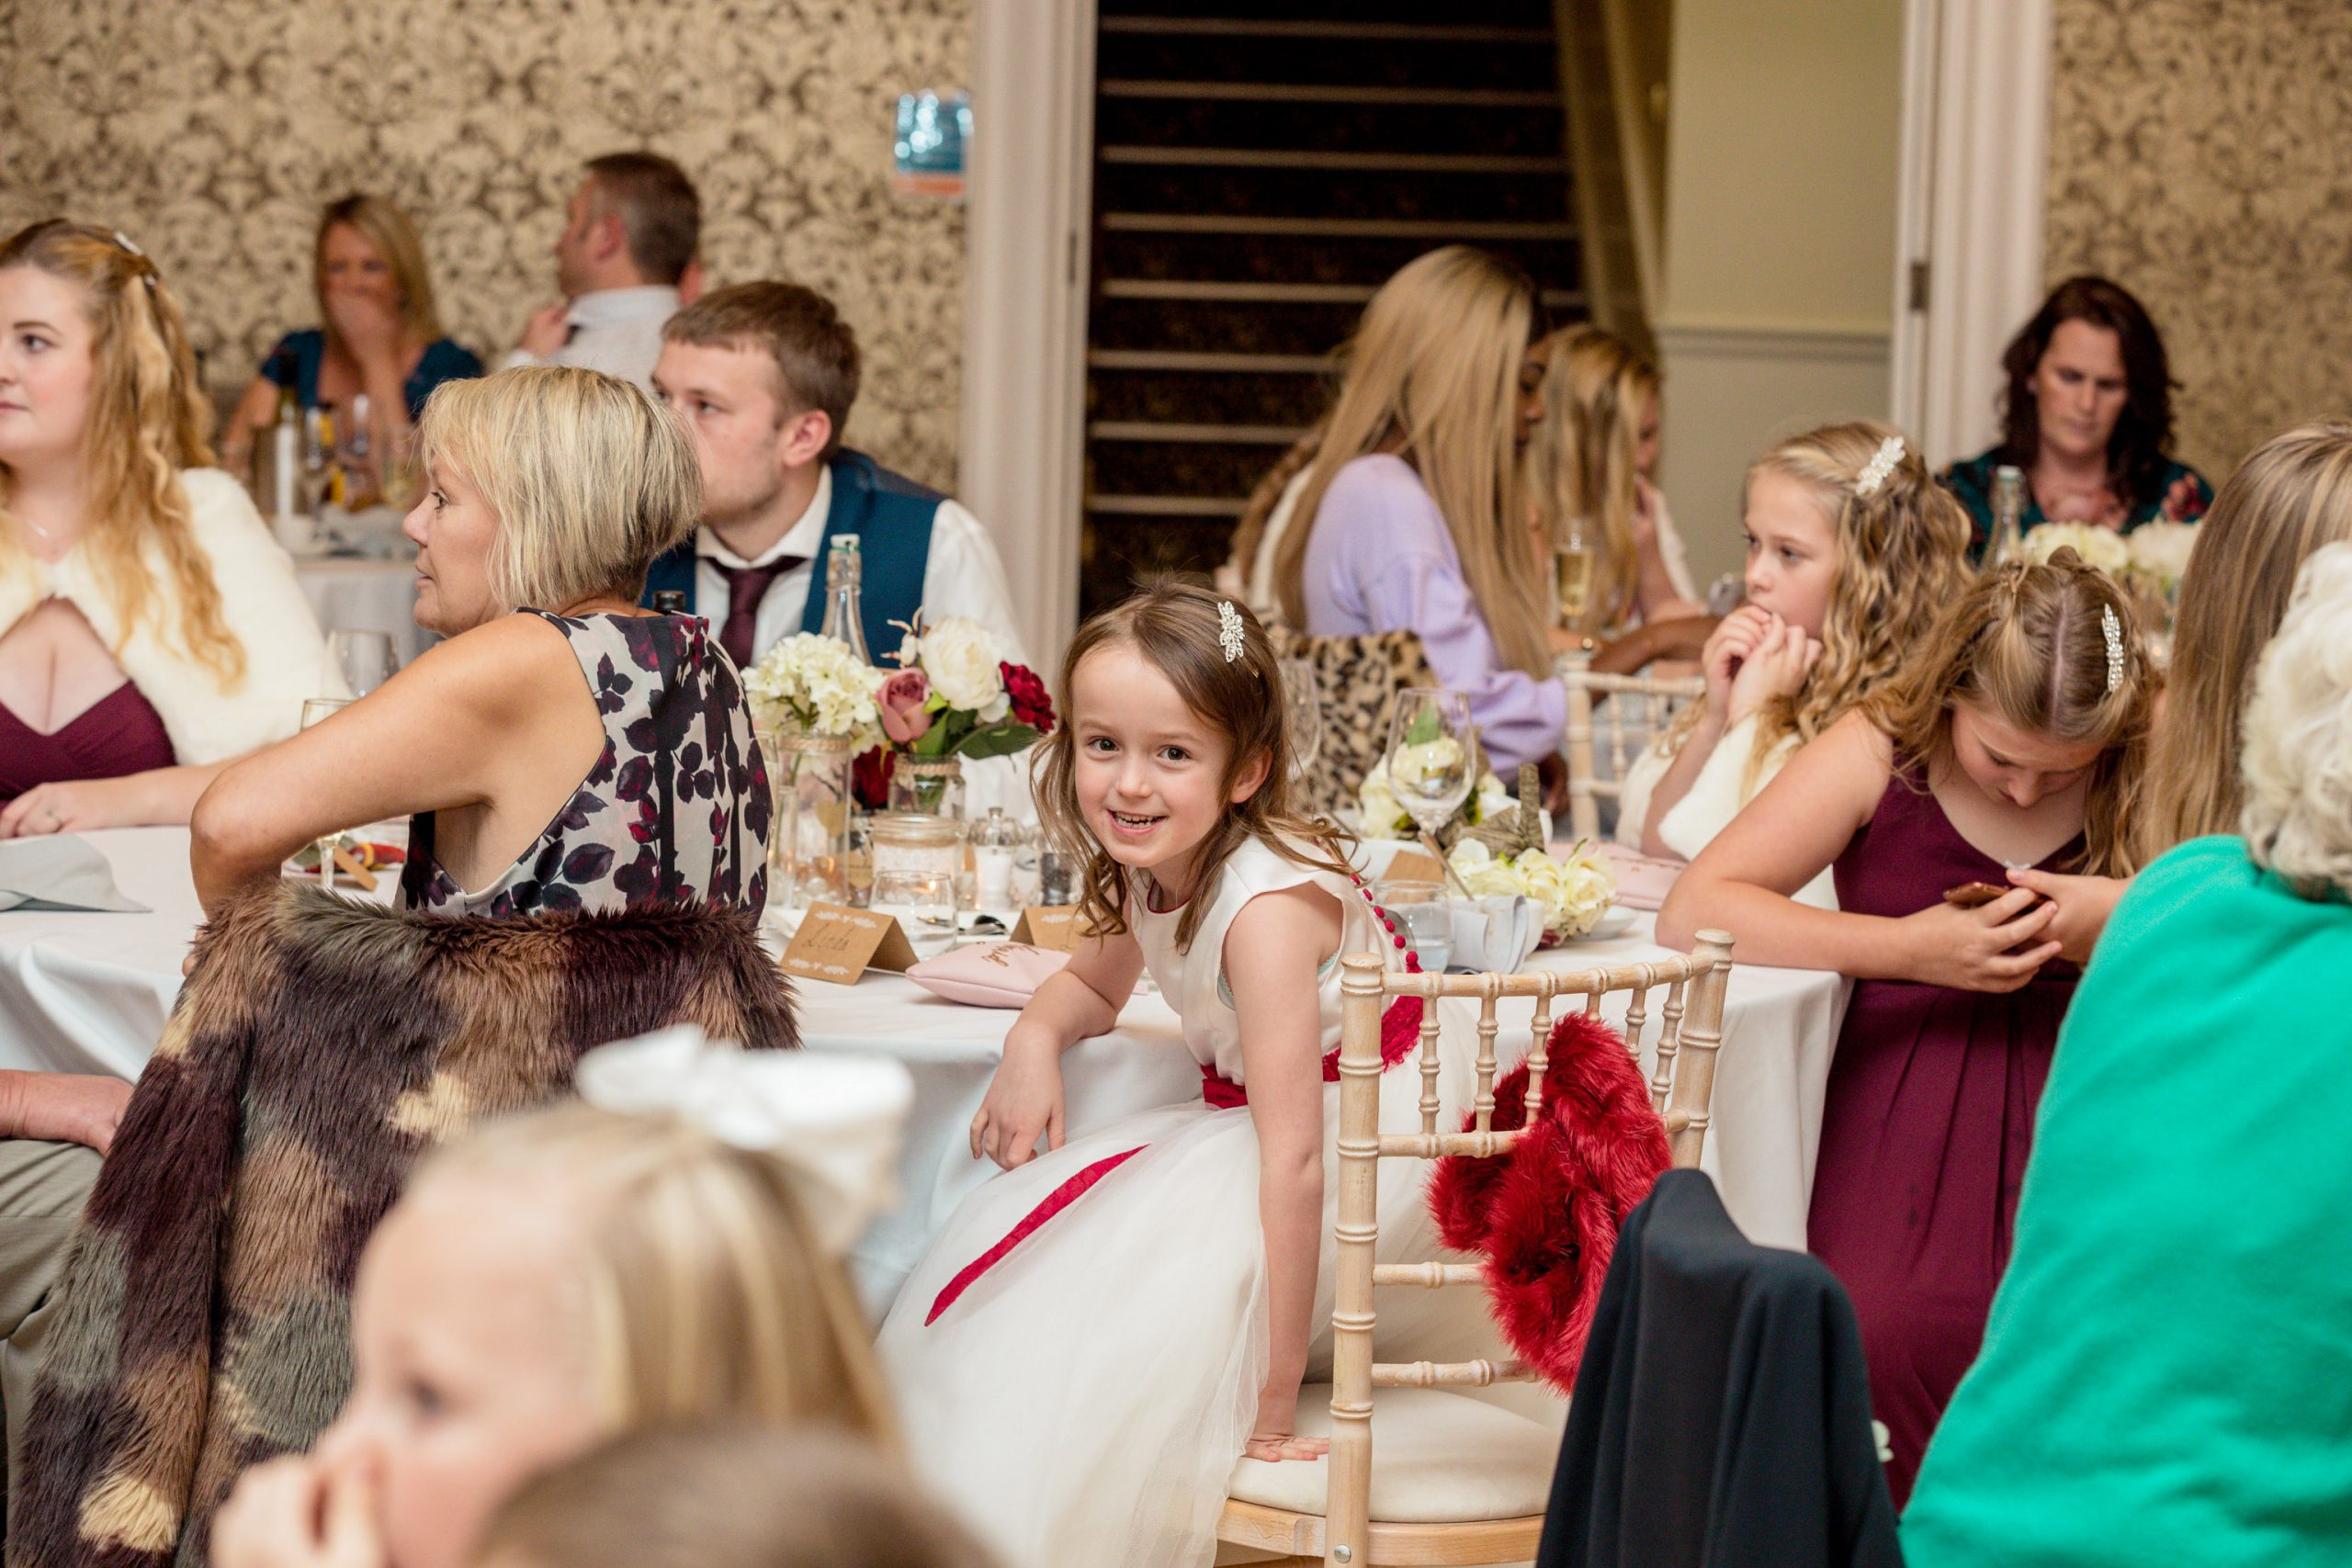 Wedding of Mandy & Jon at The Clifton Pavilion, Brist Zoo Wedding, Tania Miller Photography, South Wales Wedding Photographer